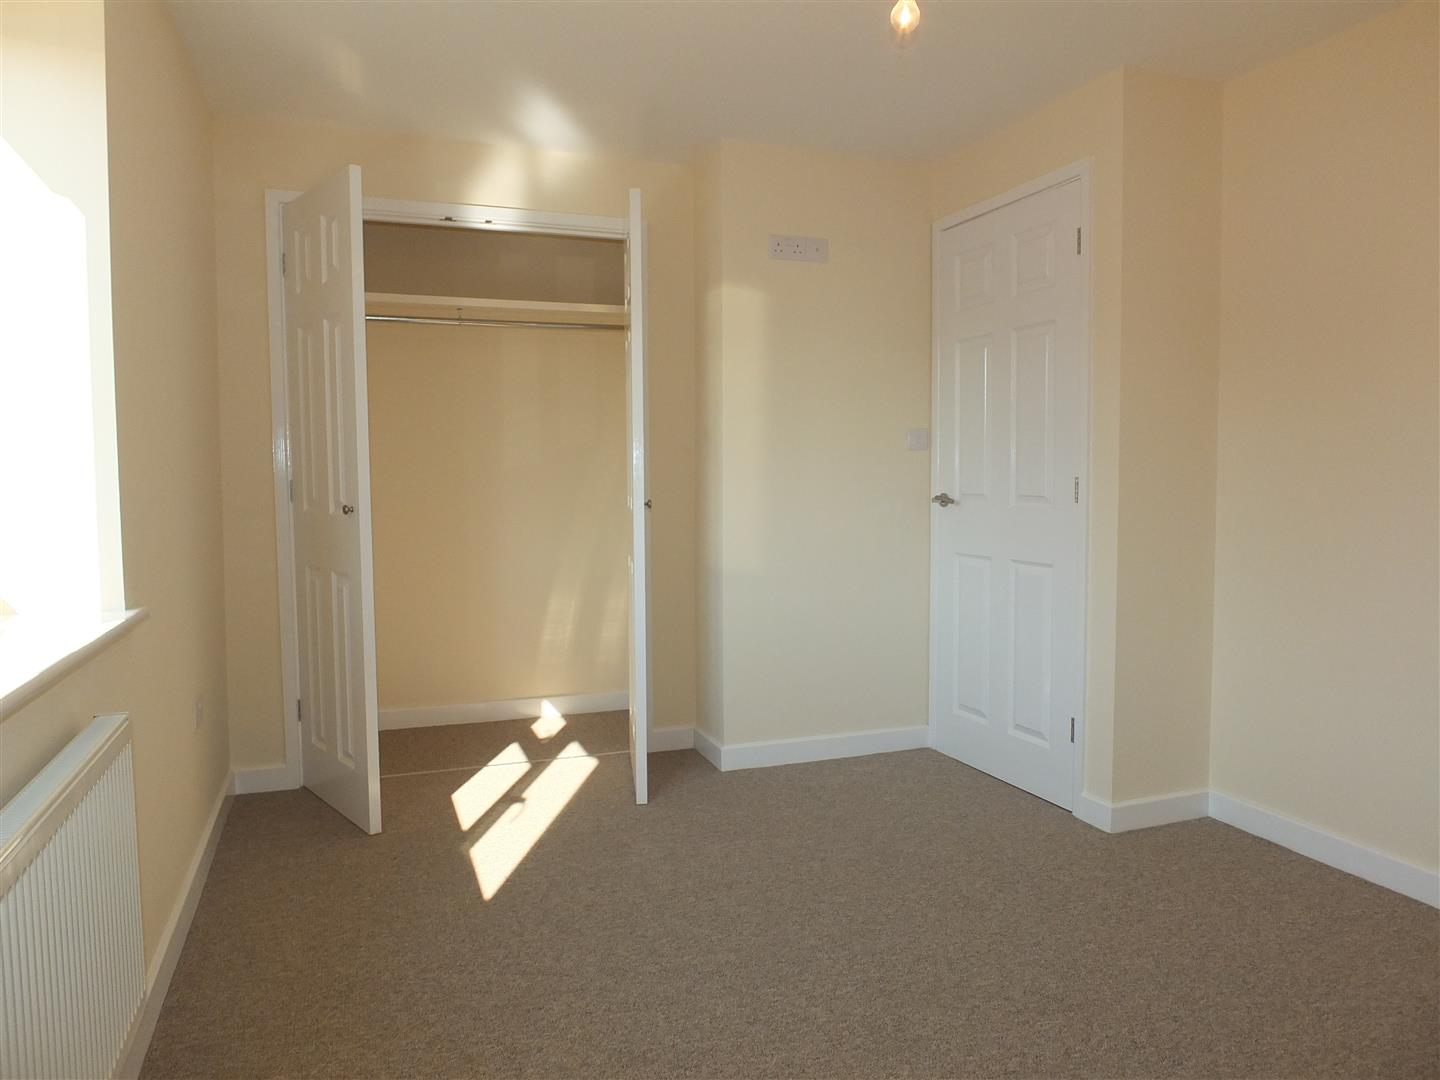 2 bed house to rent in Long Sutton Spalding, PE12 9LE  - Property Image 7